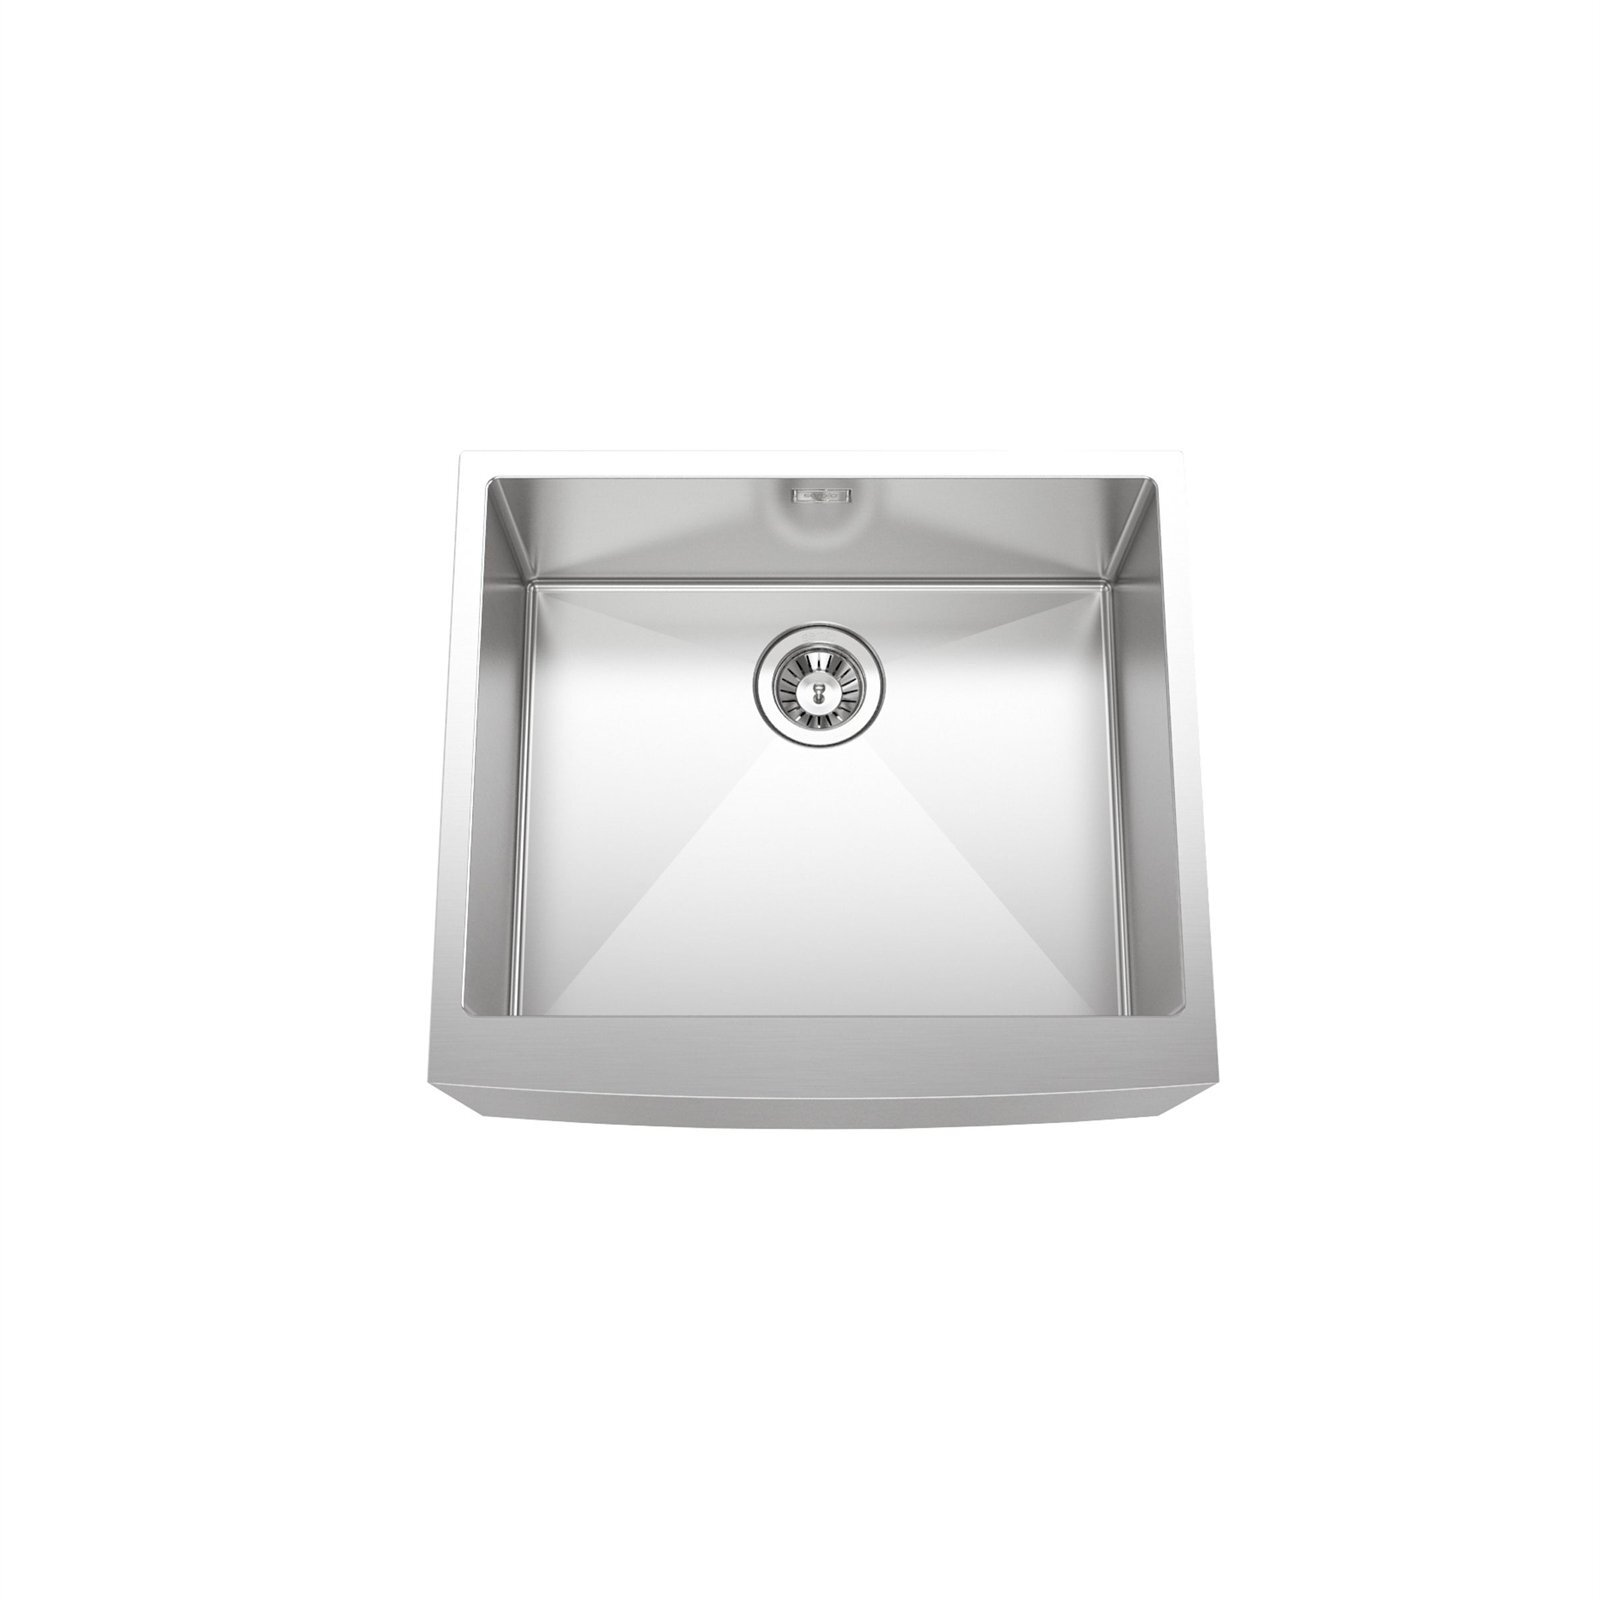 Sergio MA-001 Stainless Steel Butler Sink